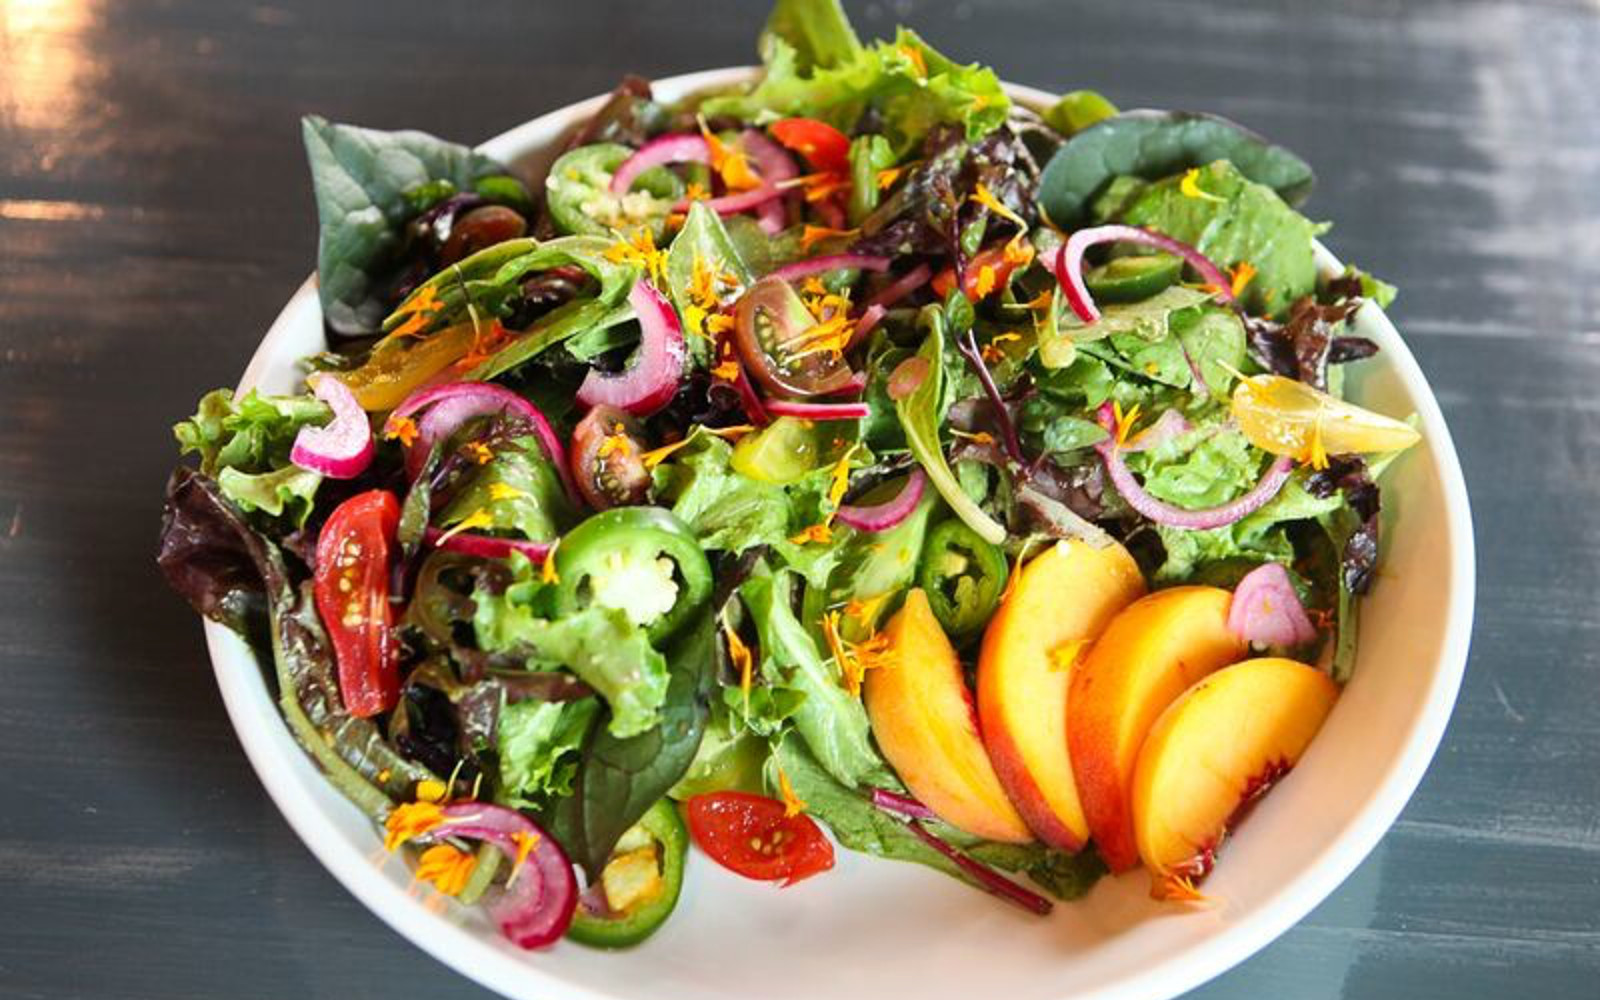 Vegan Salad with fruit